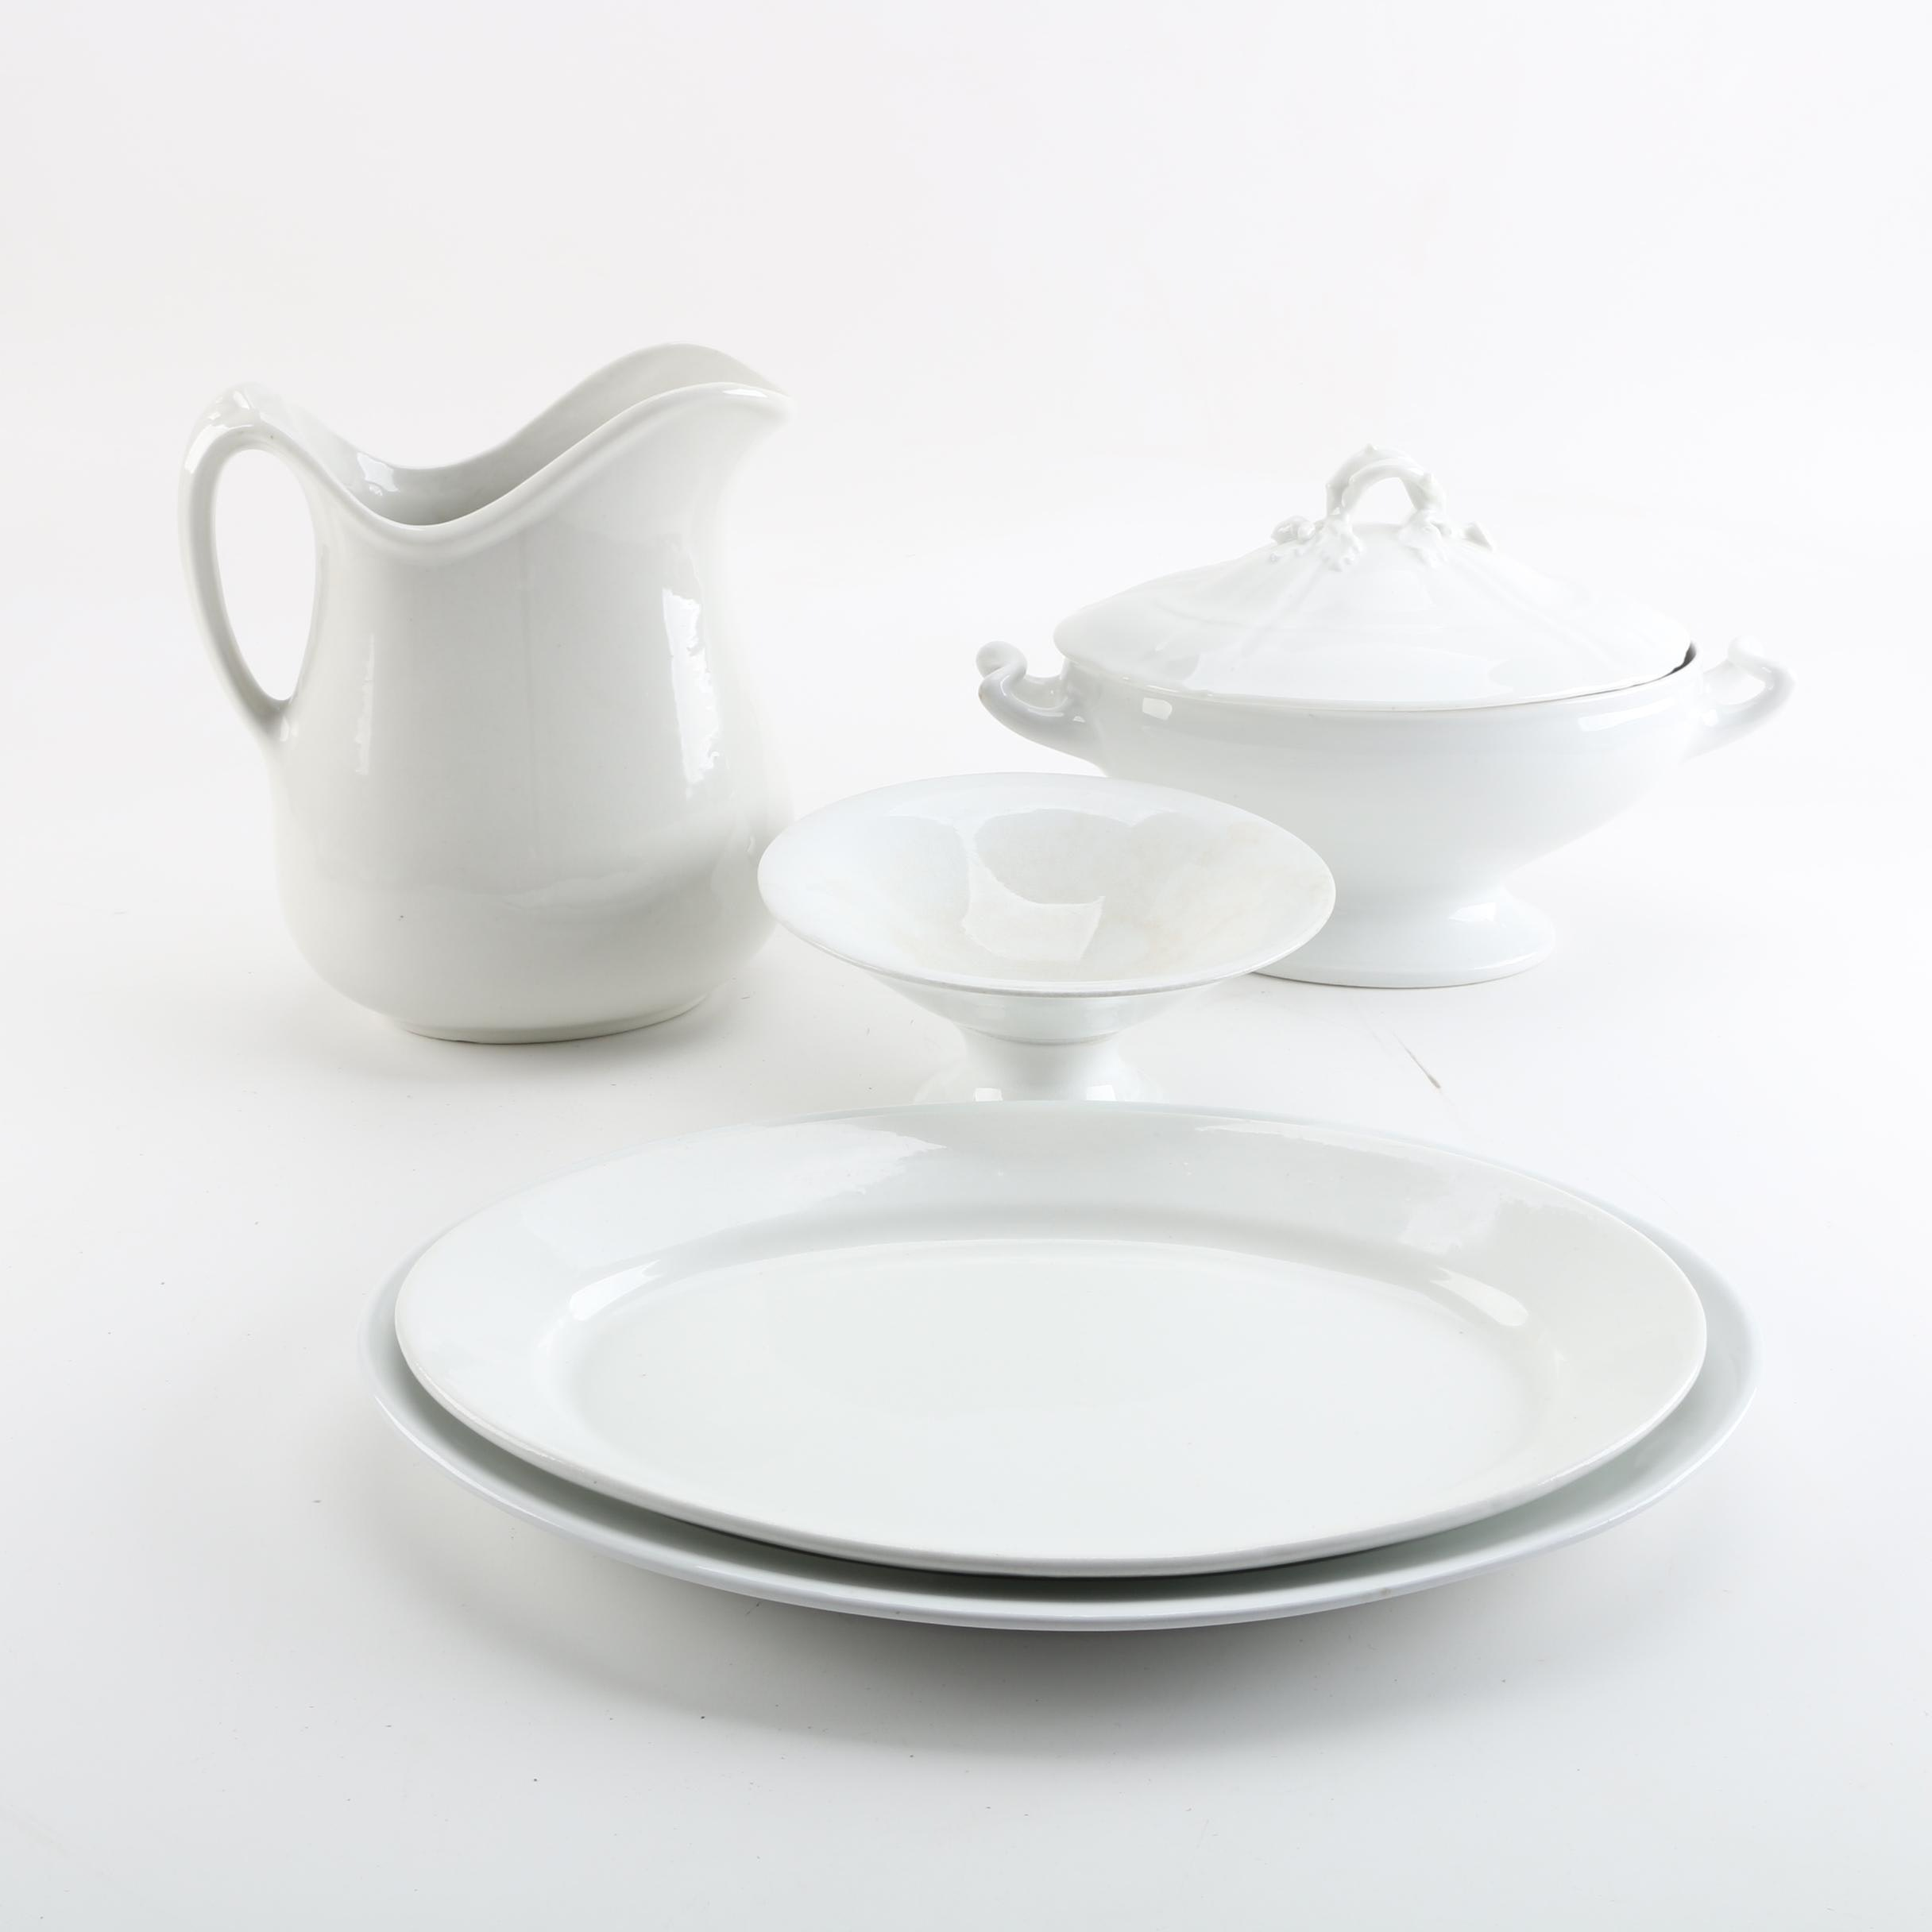 Antique and Vintage White Ironstone Tableware Including Meakin and George Scott ... & Antique and Vintage White Ironstone Tableware Including Meakin and George Scott